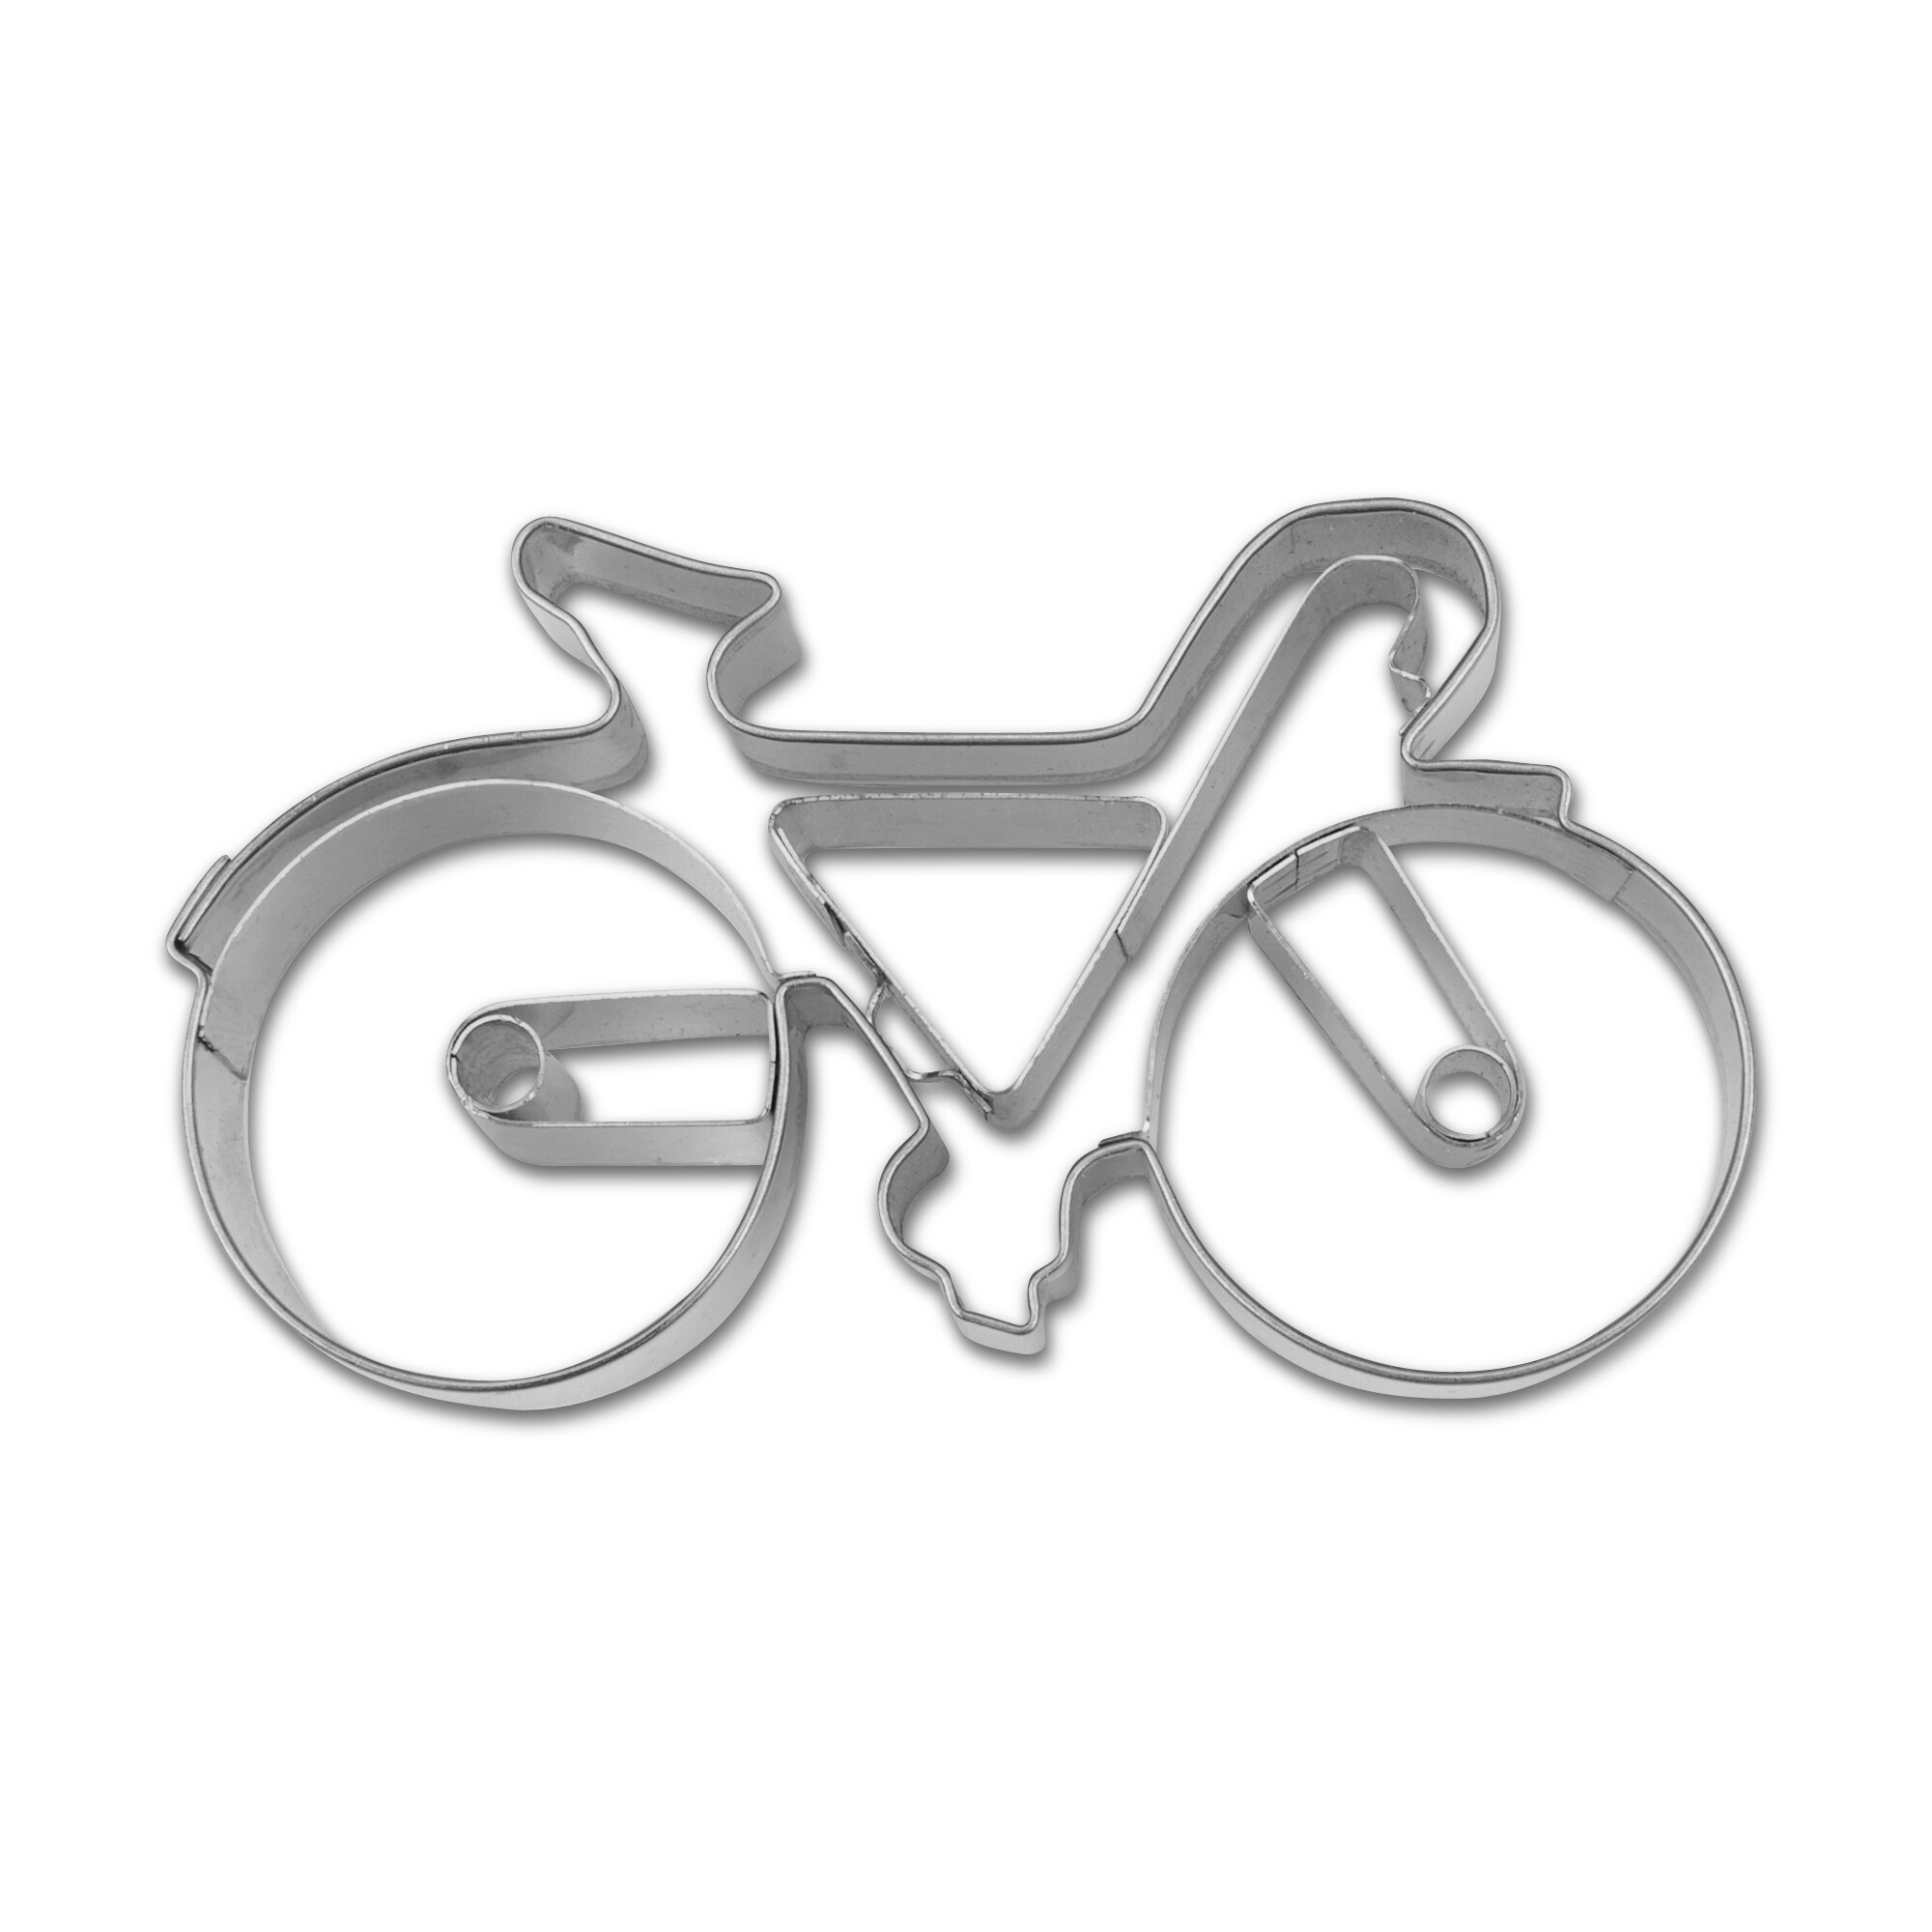 Cookie cutter with stamp - Racing bike / Bicycle